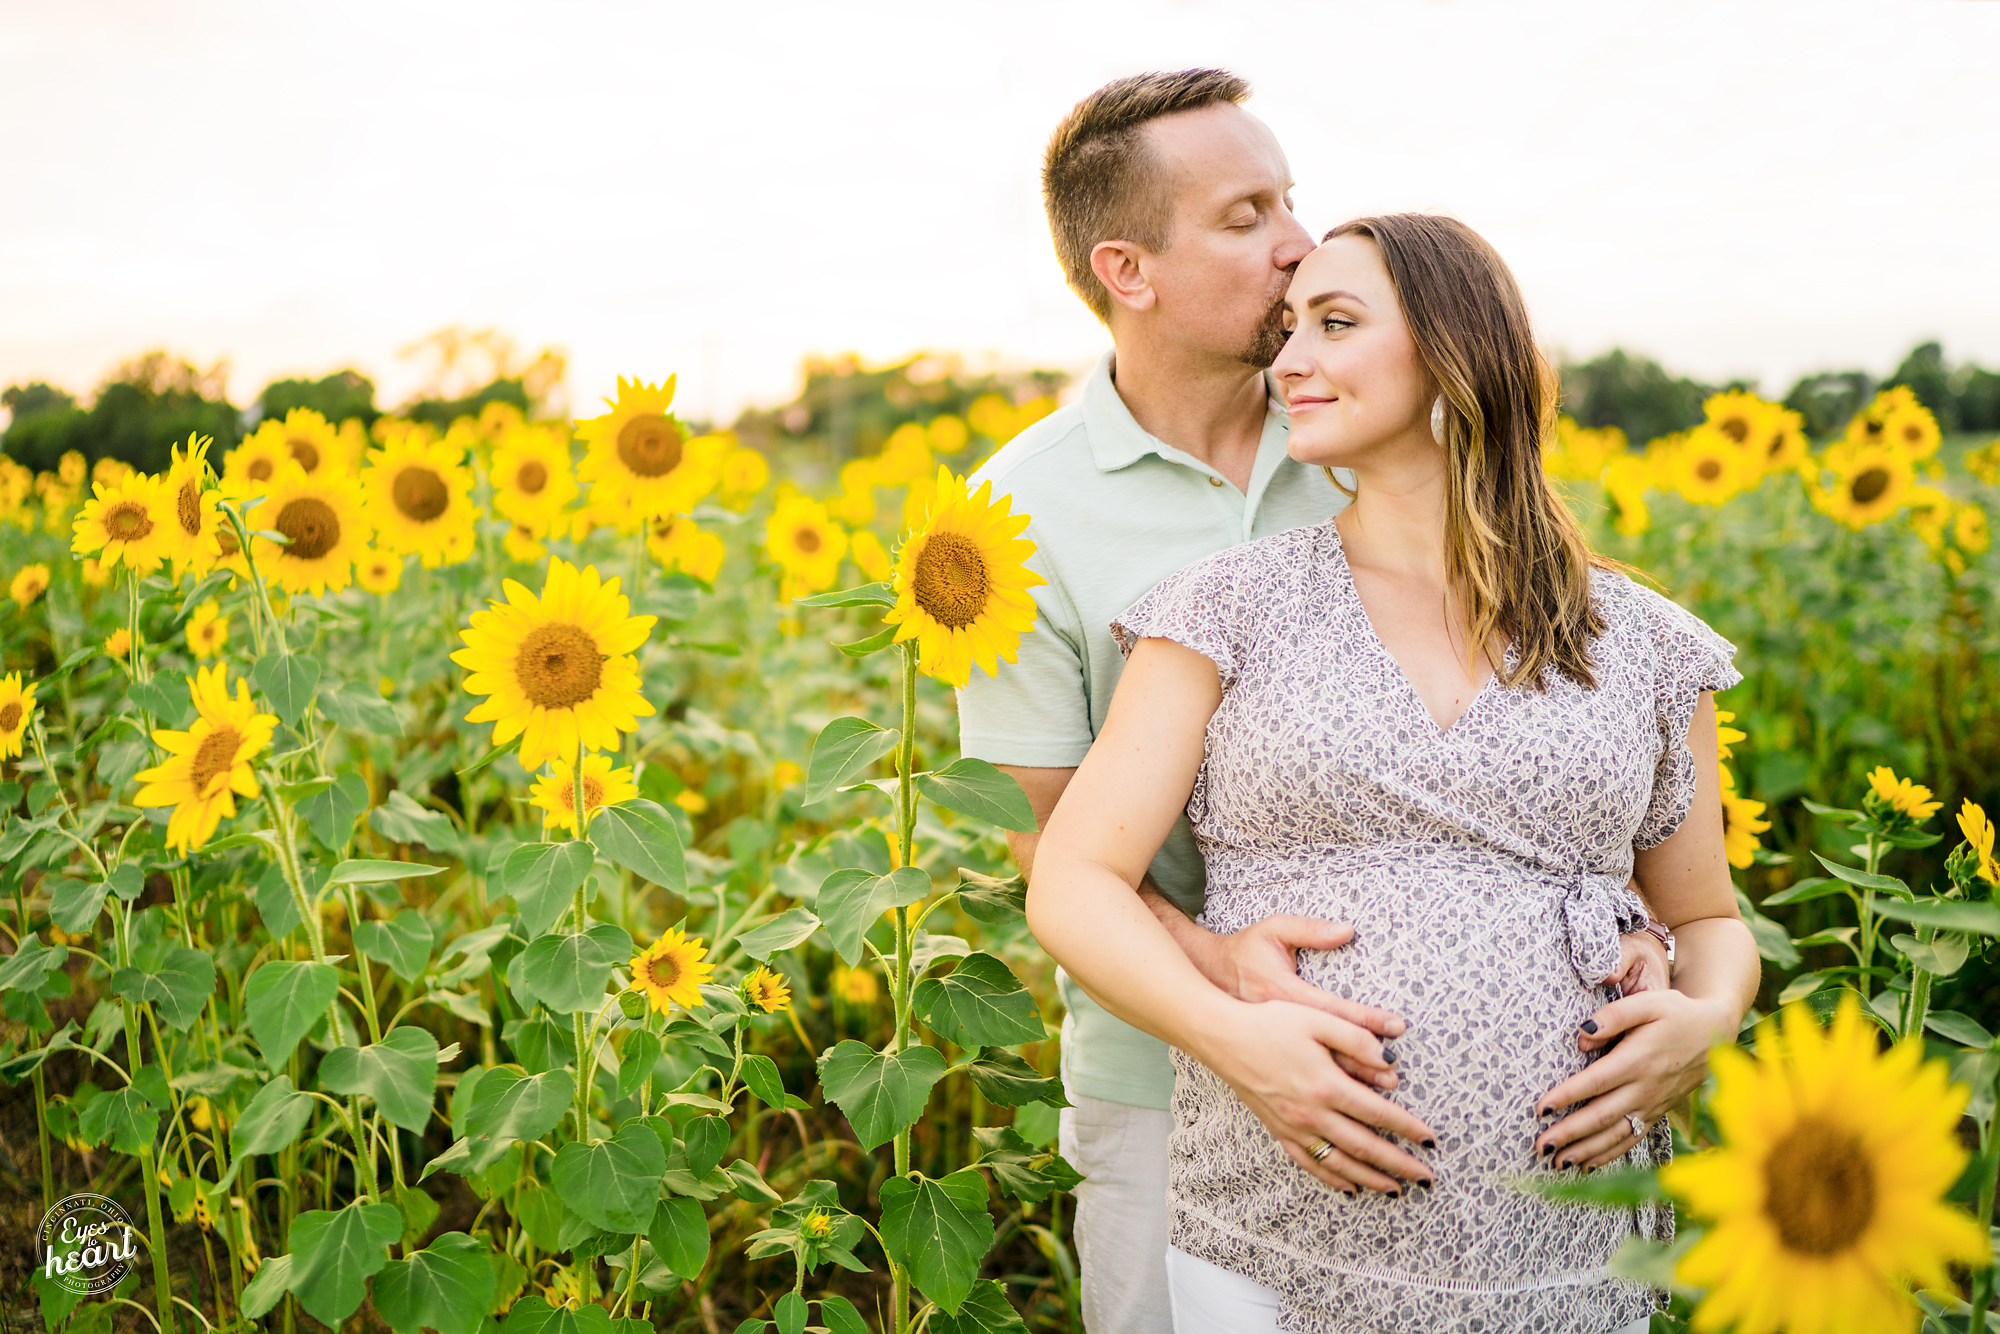 Cottell-Park-Sunflower-Field-Maternity-Photography-3.jpg